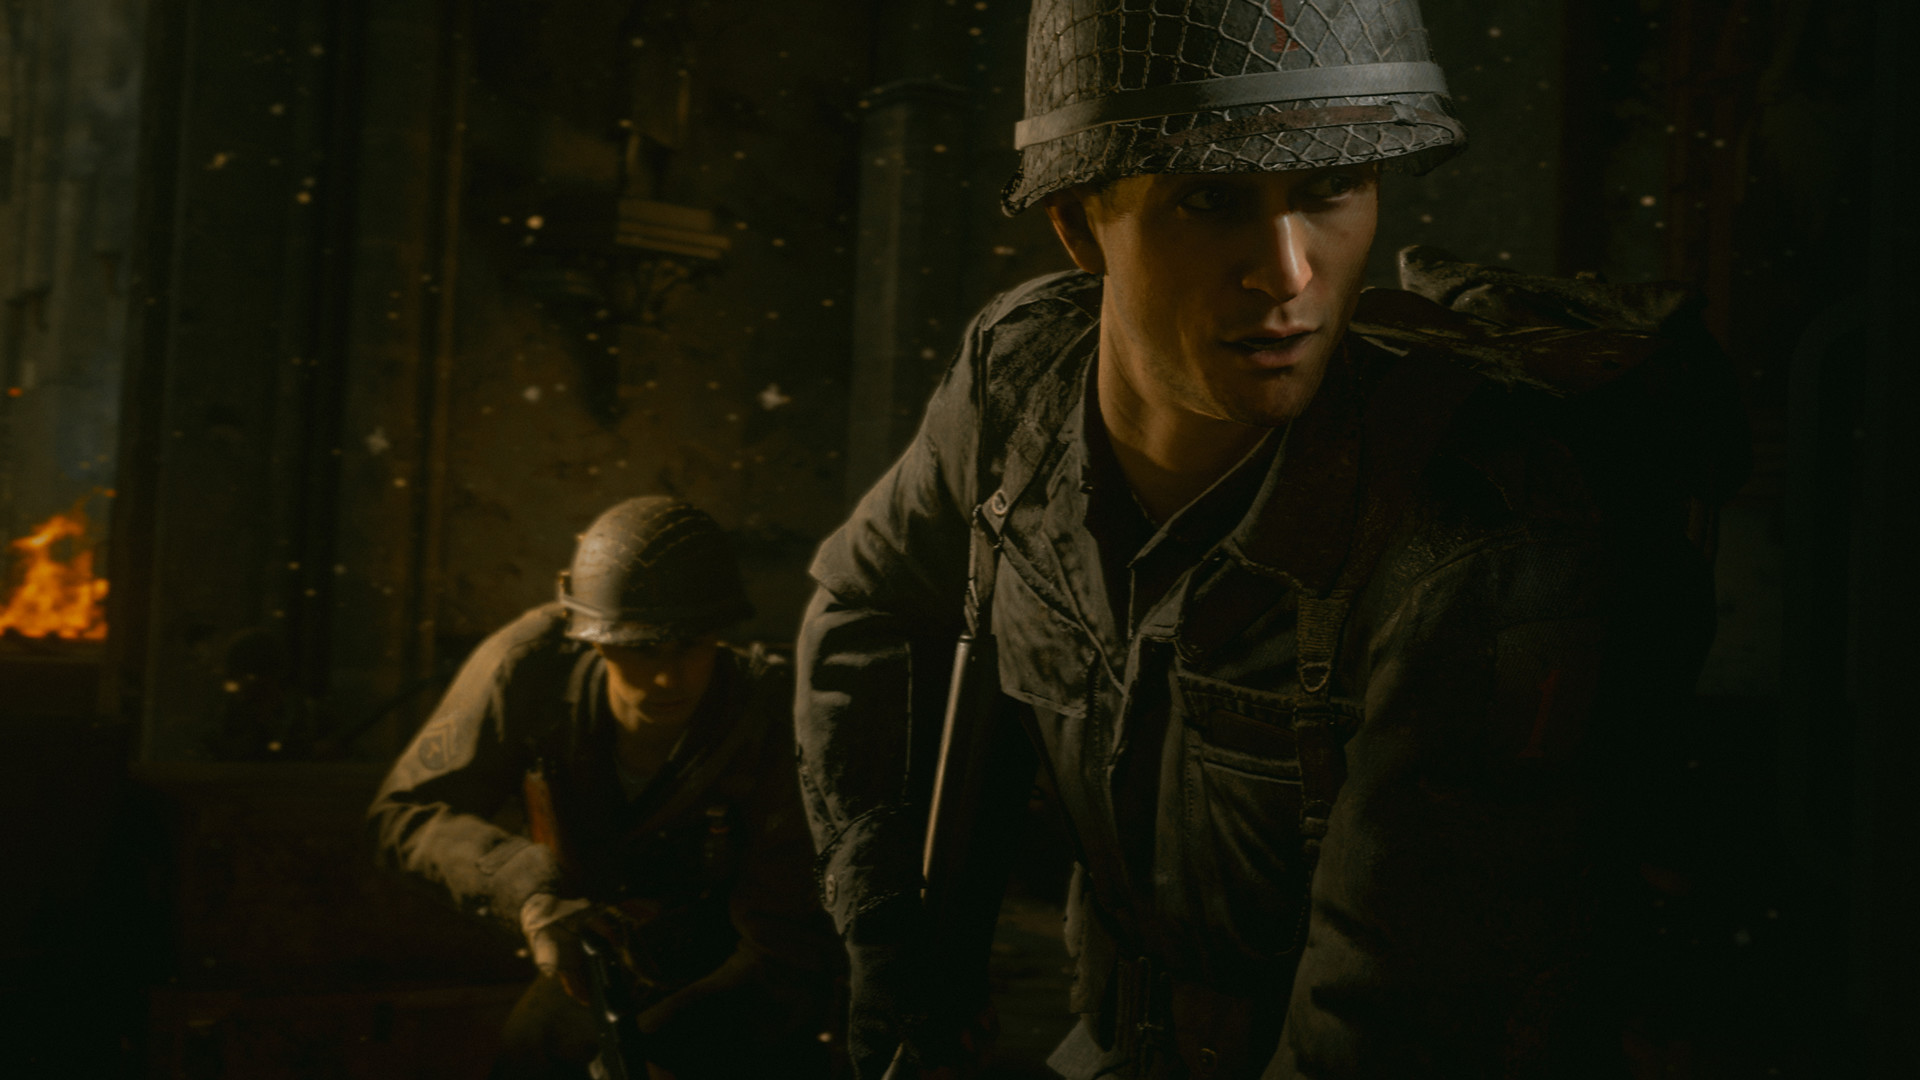 Sledgehammer's new Call of Duty confirmed for autumn 2021